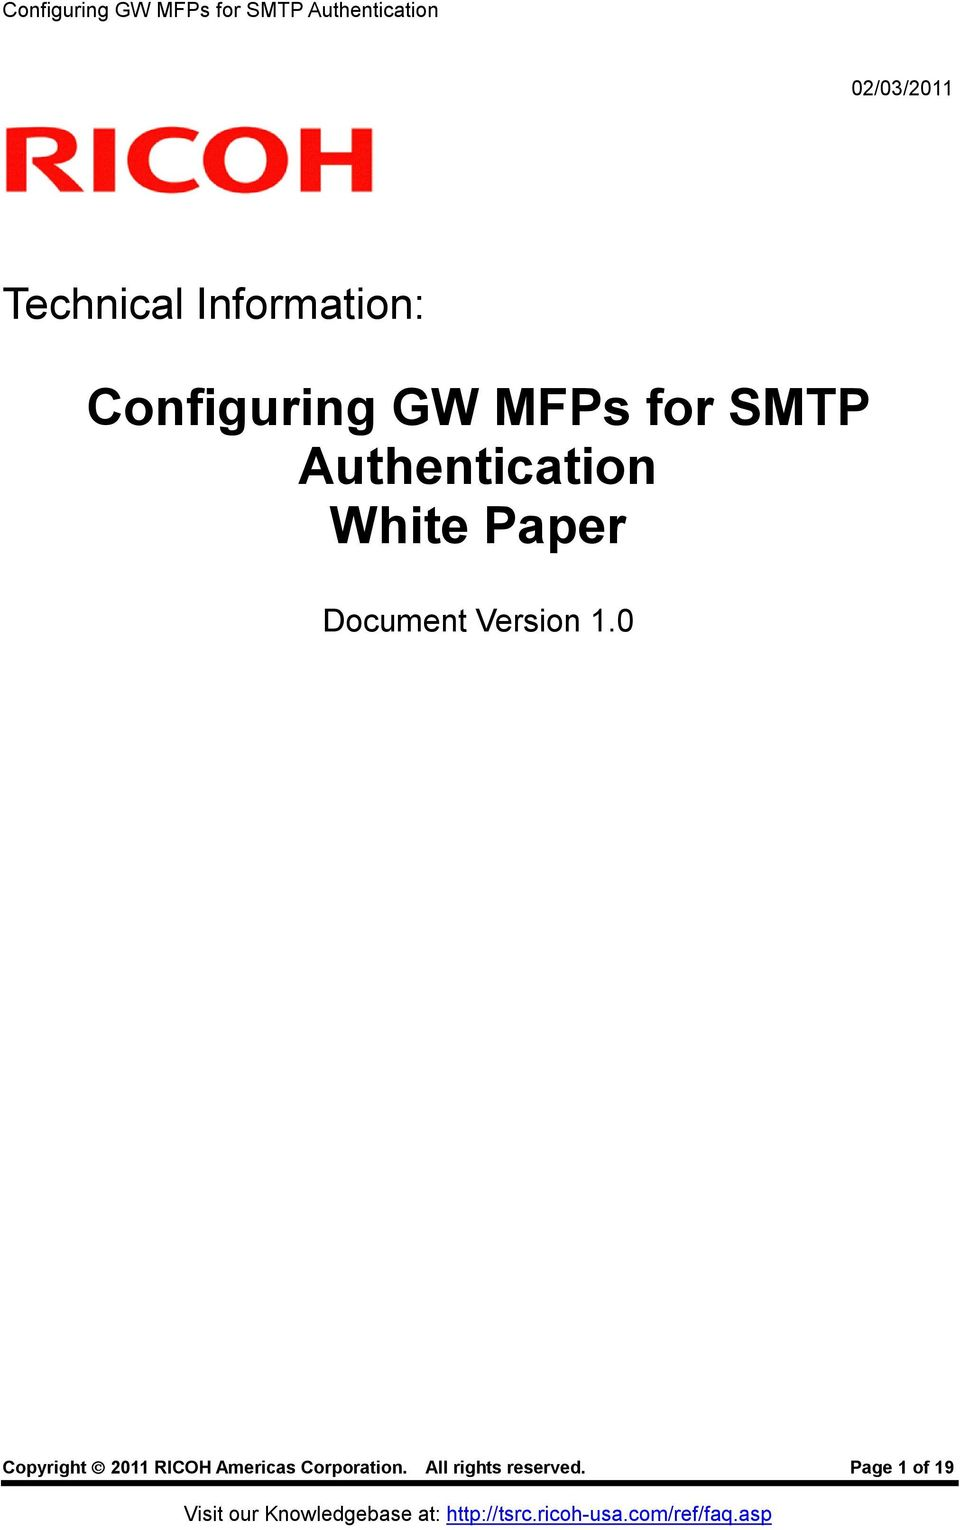 Configuring GW MFPs for SMTP Authentication White Paper - PDF